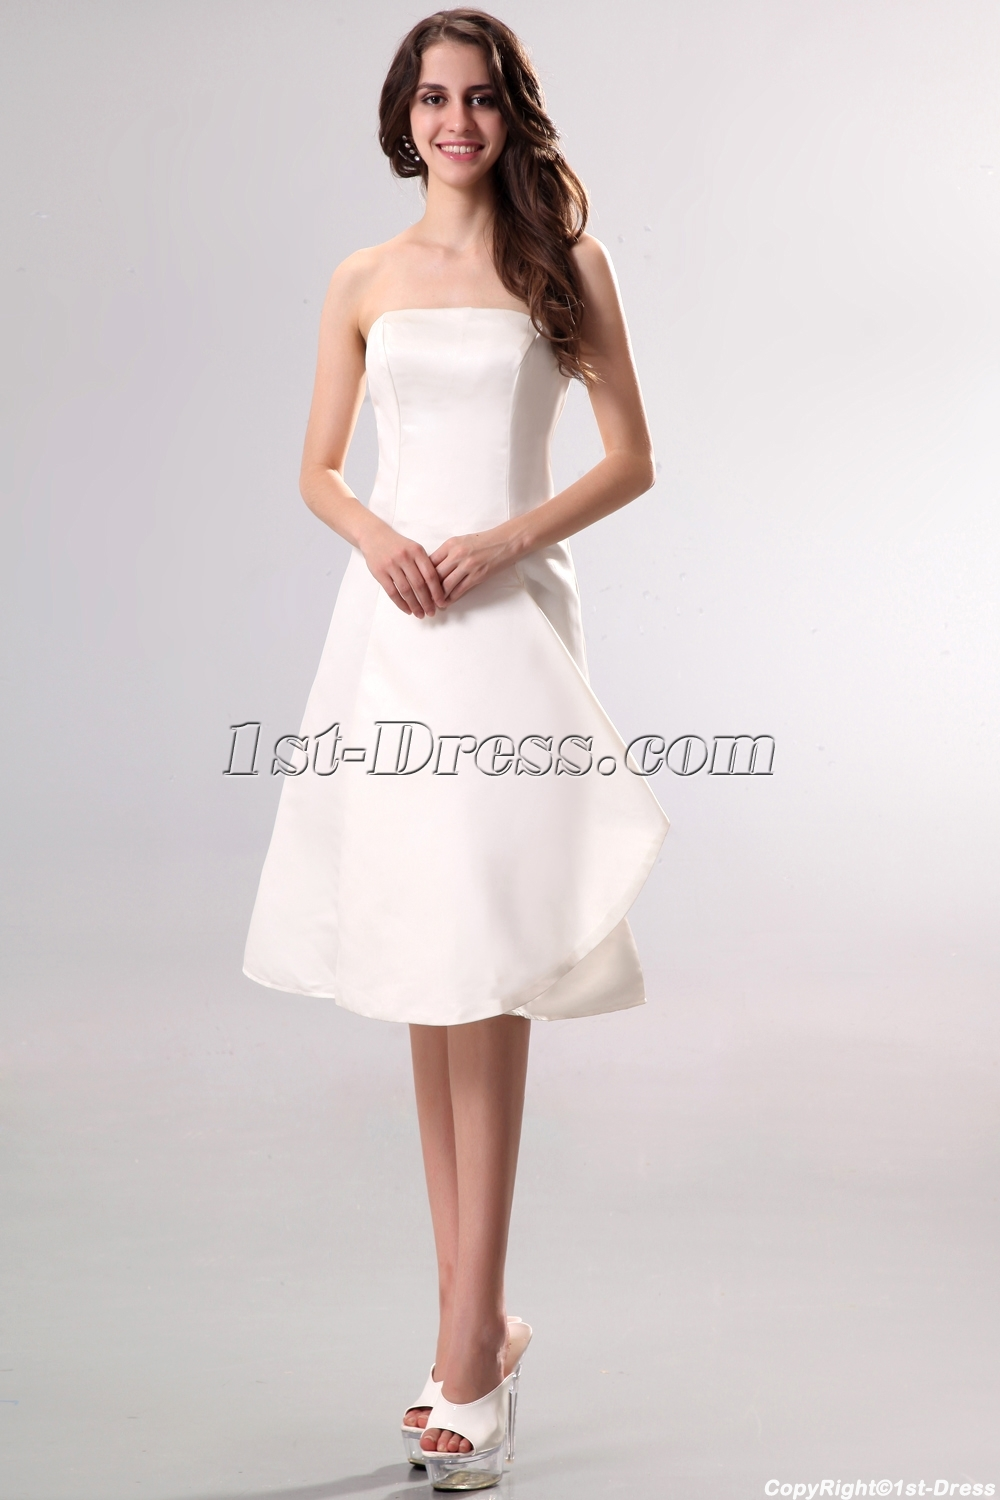 Strapless Simple Short Summer Wedding Dress Loading Zoom